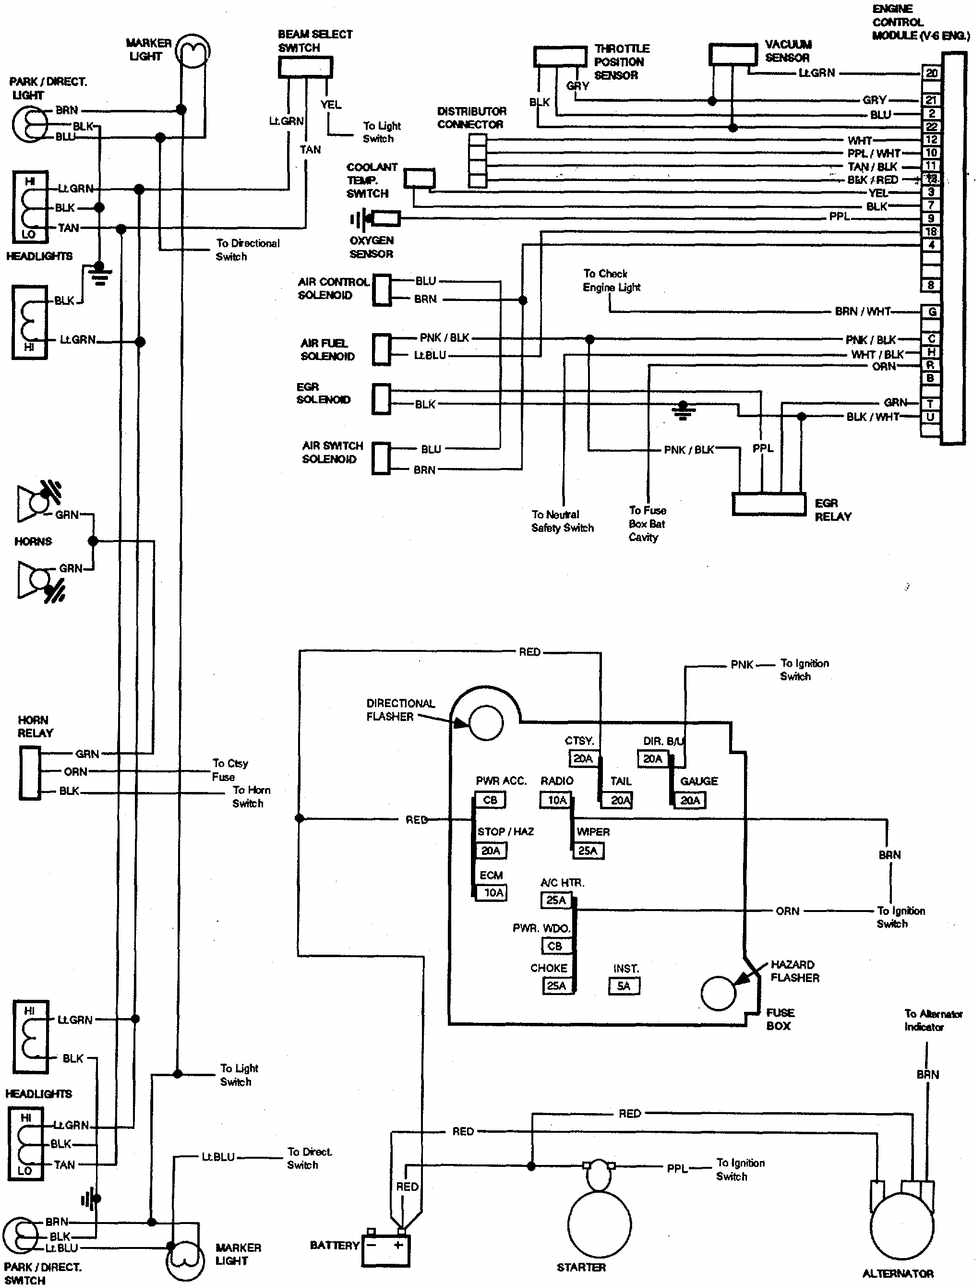 95 chevy lumina fuel diagram  95  free engine image for